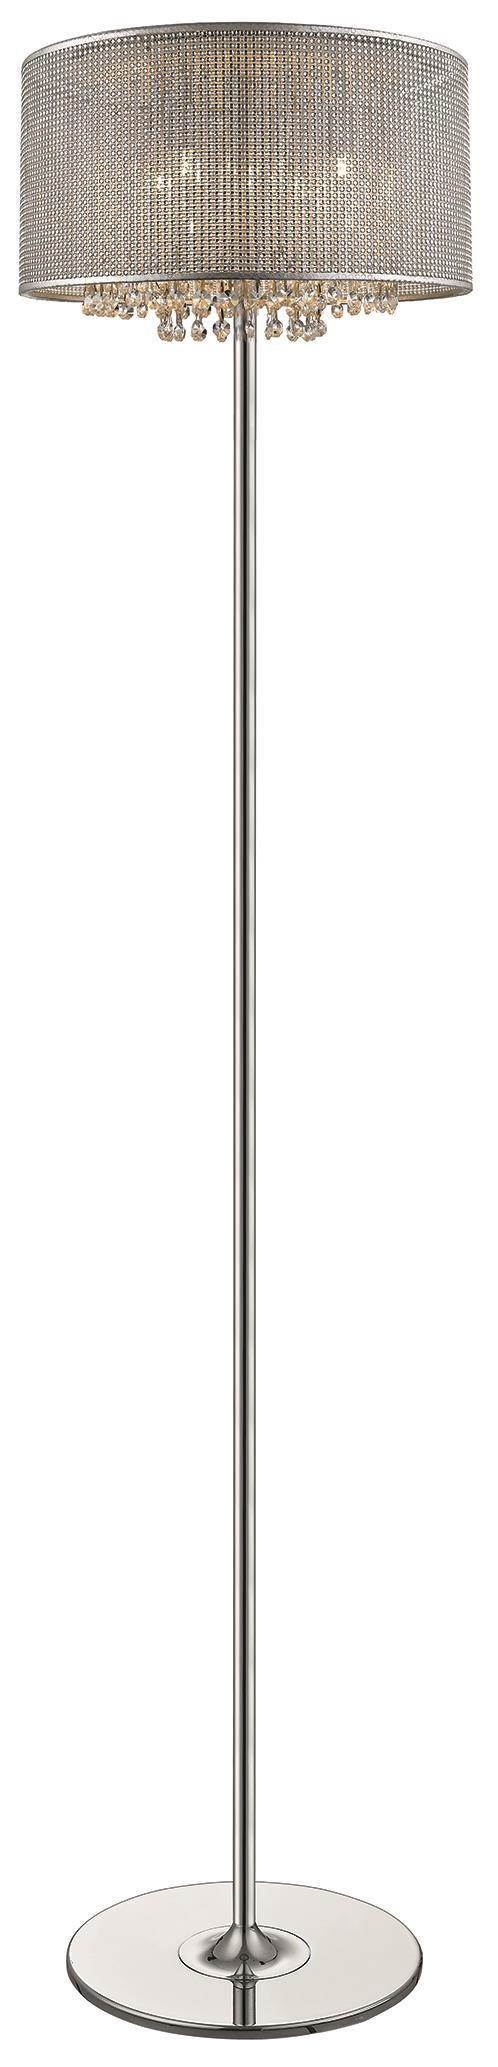 SND Lighting SND170 Christie Floor Lamp - SND Electrical Ltd